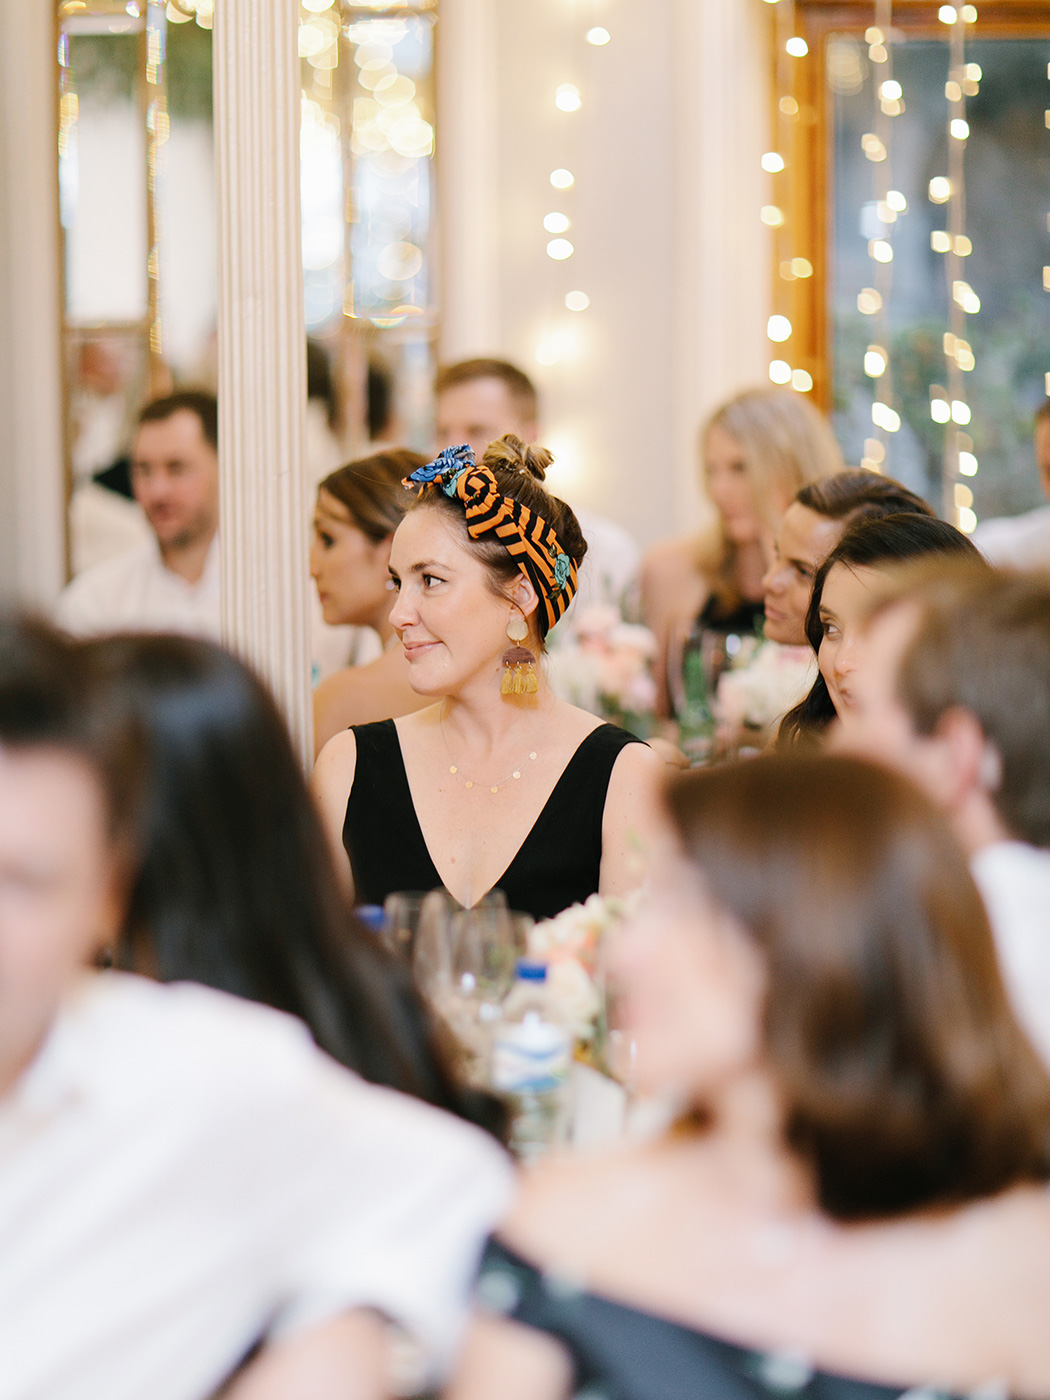 Speeches | Rensche Mari Photography